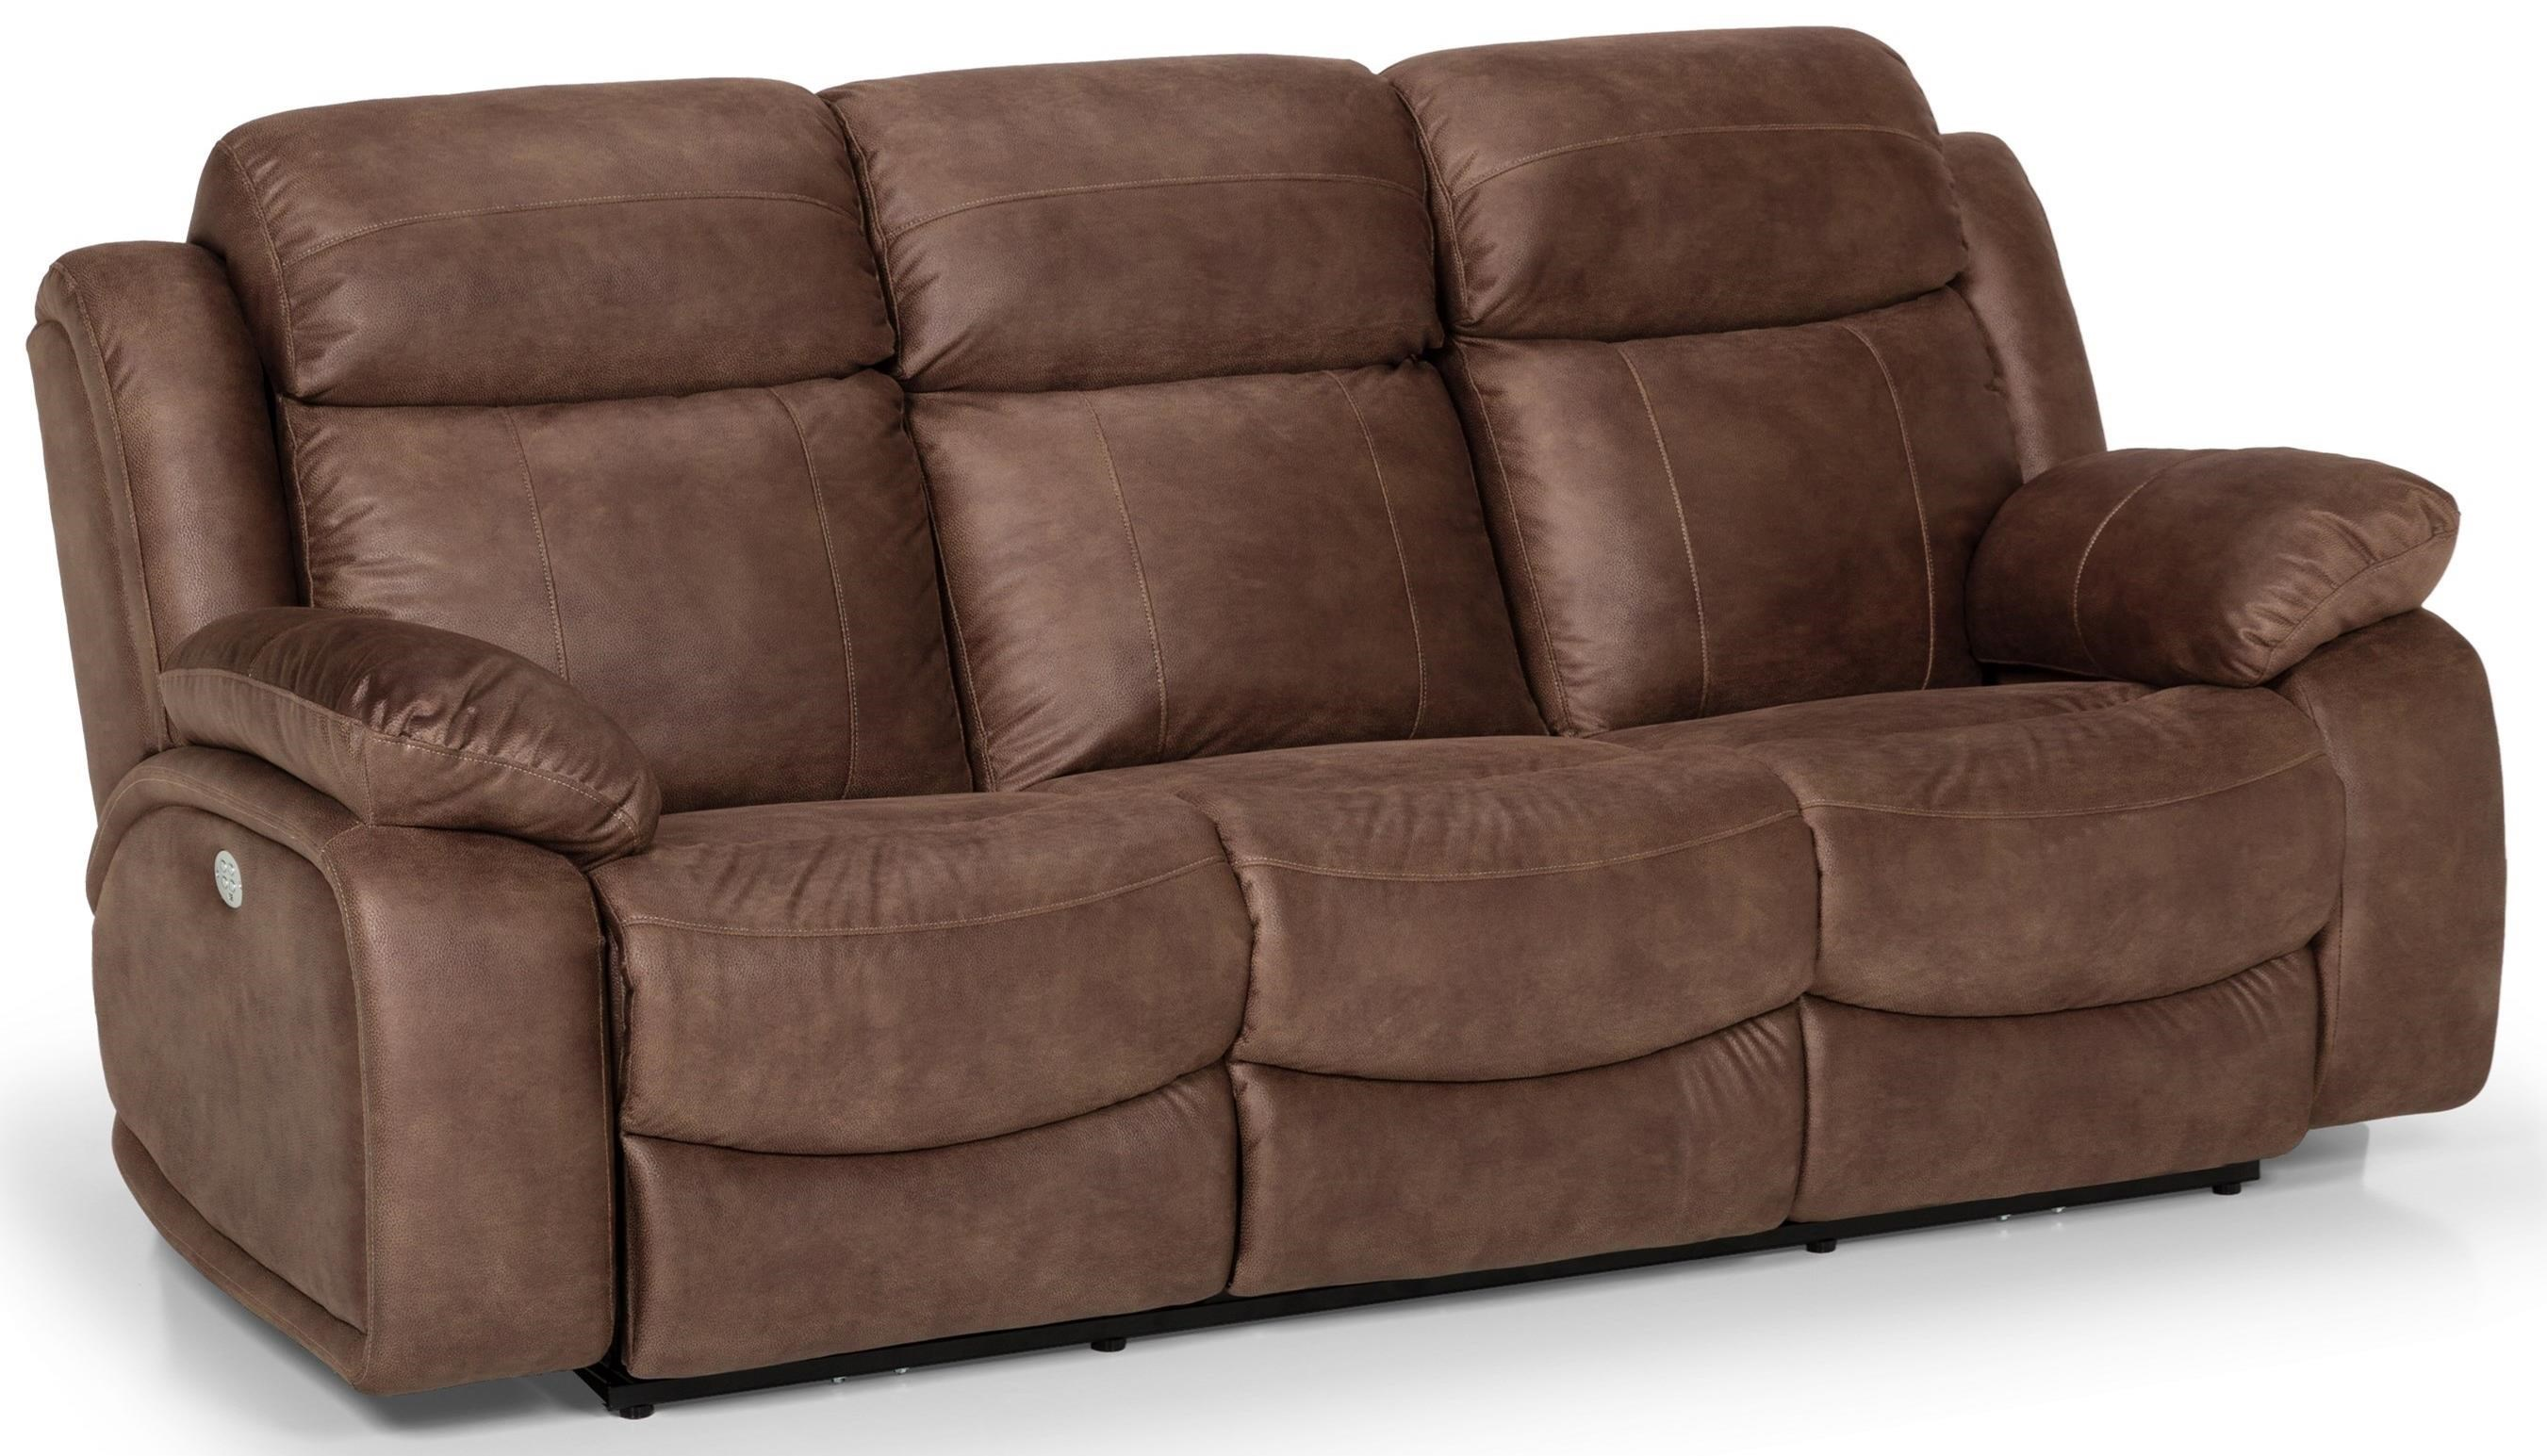 Stanton 853 Casual Dual Reclining Power Sofa With Power Head/Lumbar And USB  Ports In